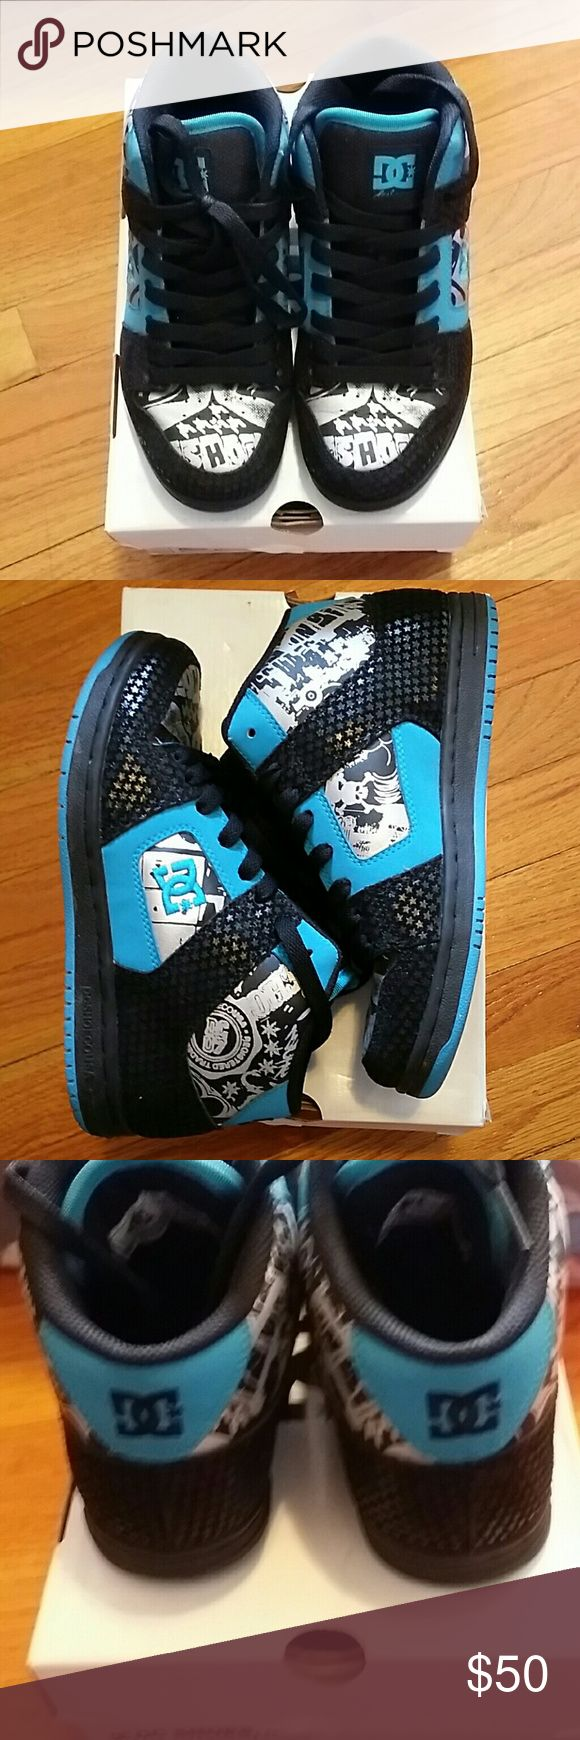 DC sneakers DC sneakers worn once DC Shoes